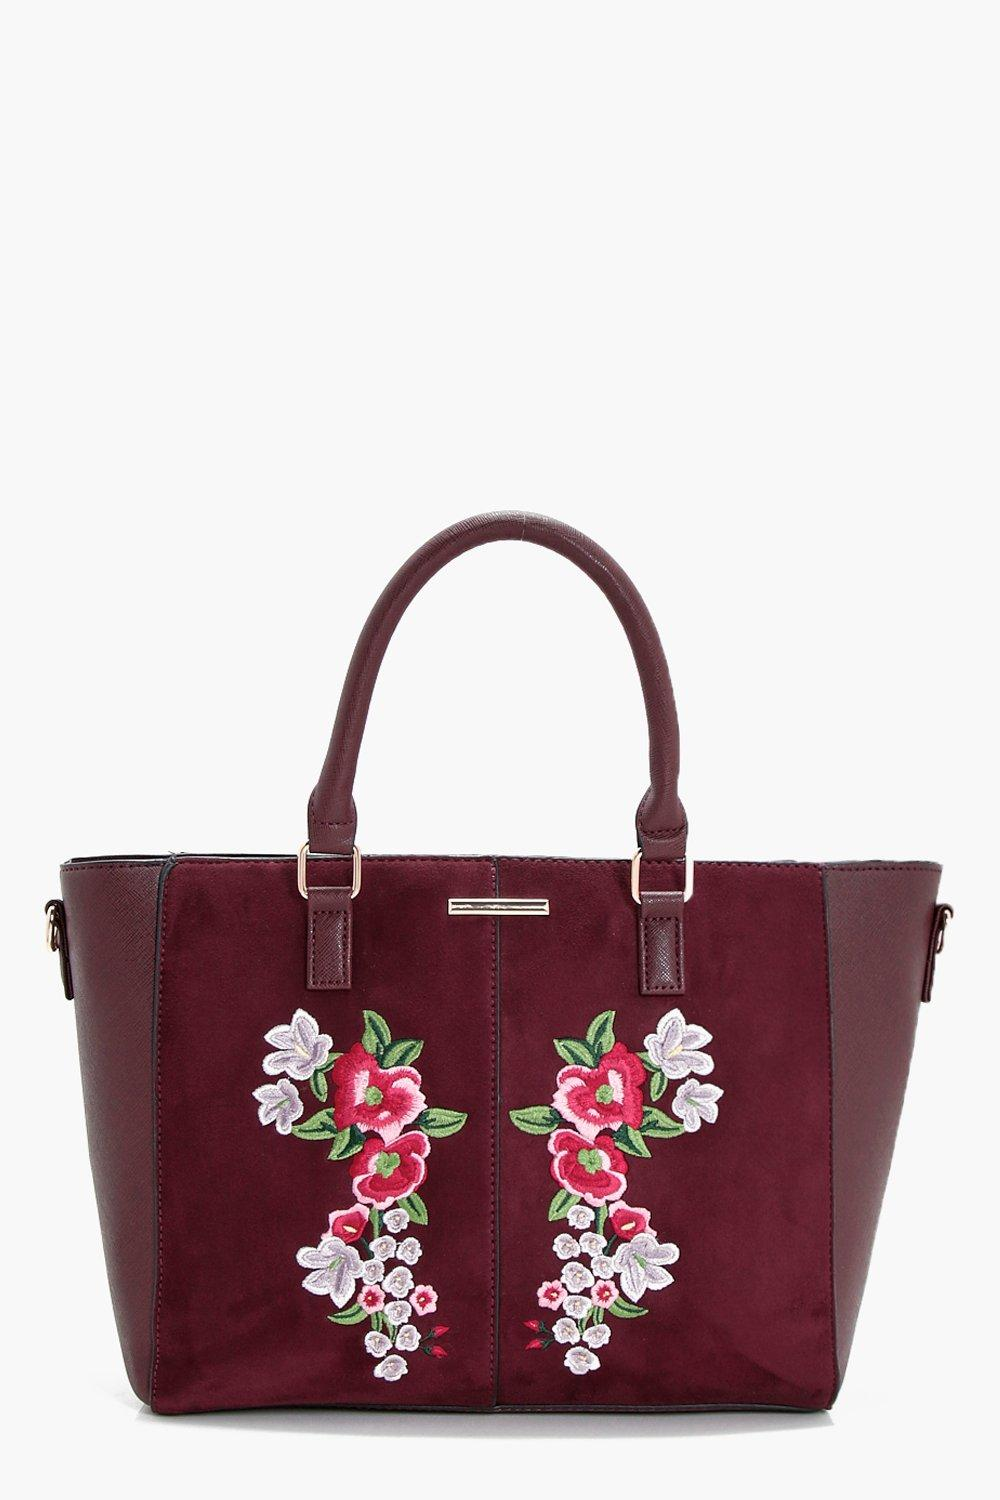 Embroidery Winged Tote - wine - Holly Embroidery W